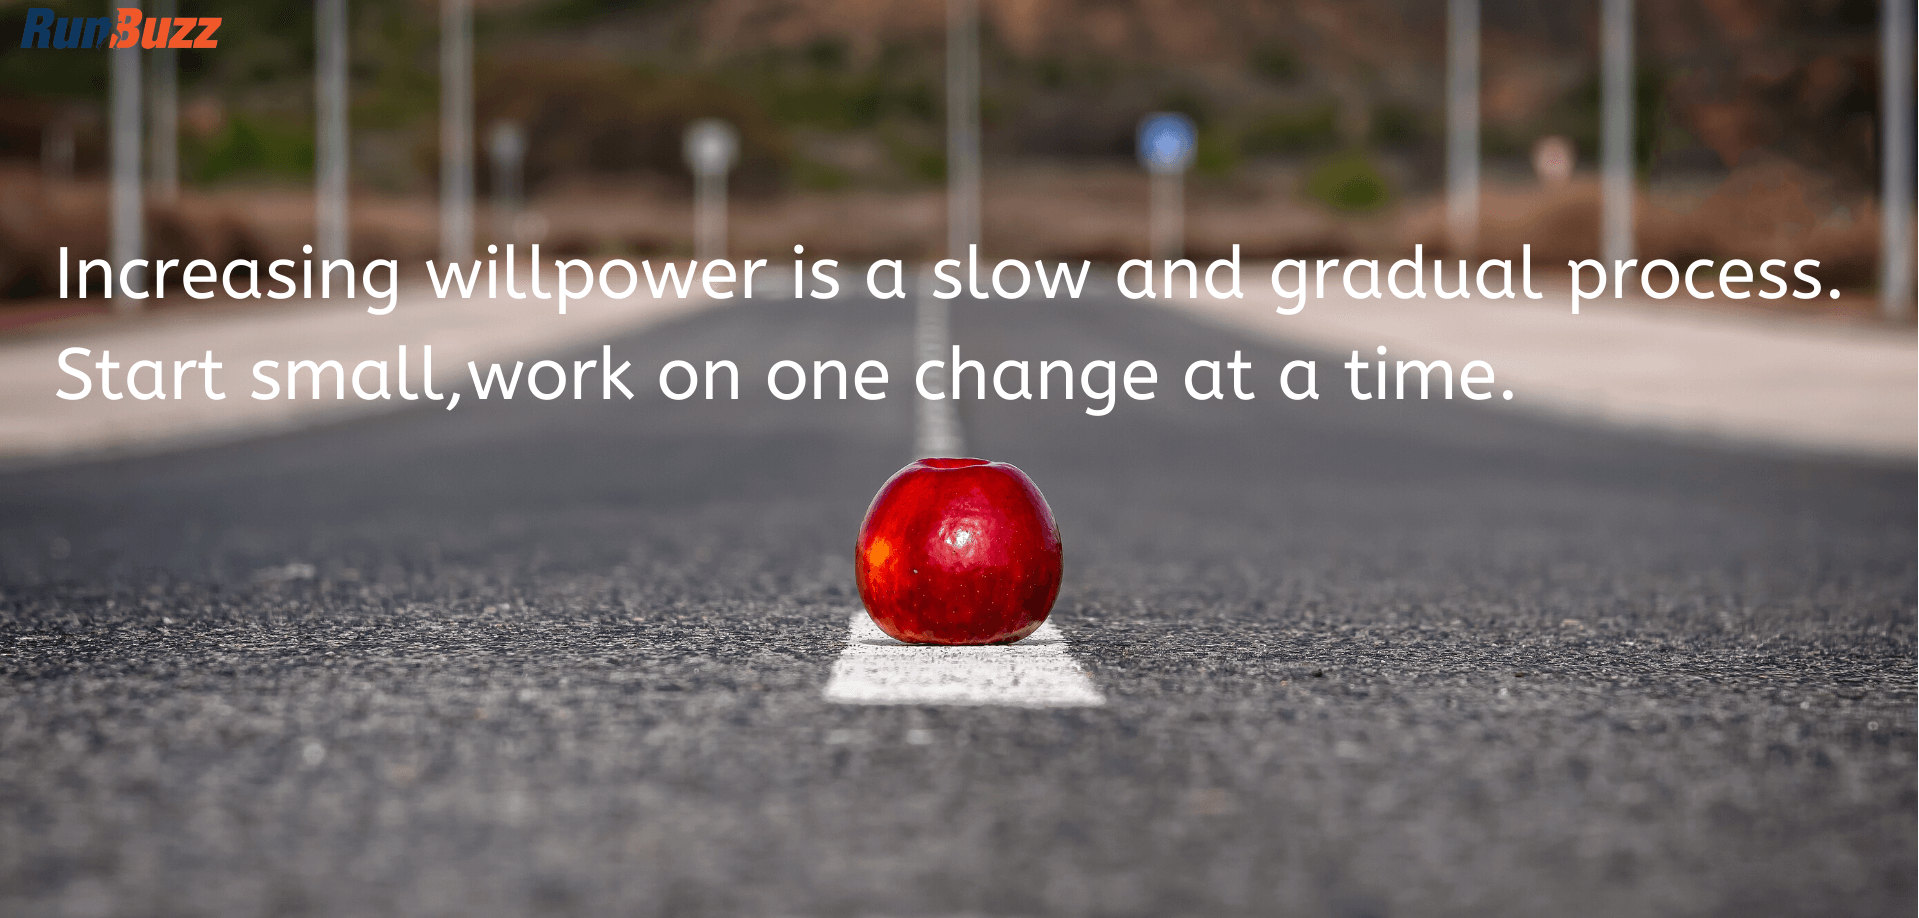 Increasing-willpower-is-a-slow-and-gradual-process.-Start-smallwork-on-one-change-at-a-time.